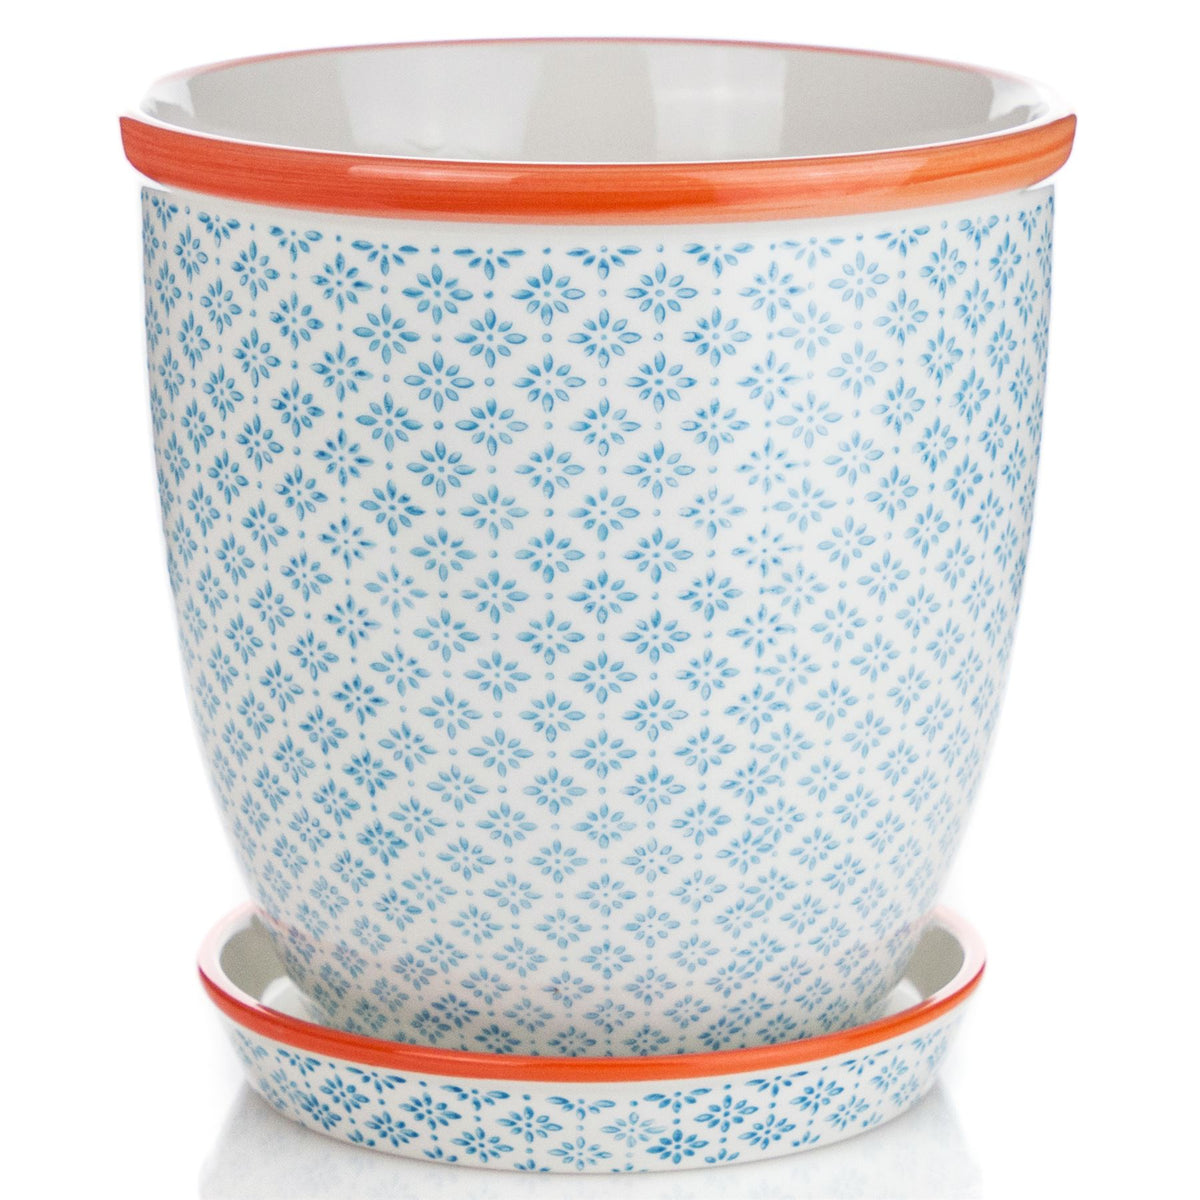 Nicola Spring Hand-Printed Japanese China Flower Pot with Drip Tray - Blue / Orange - 203mm